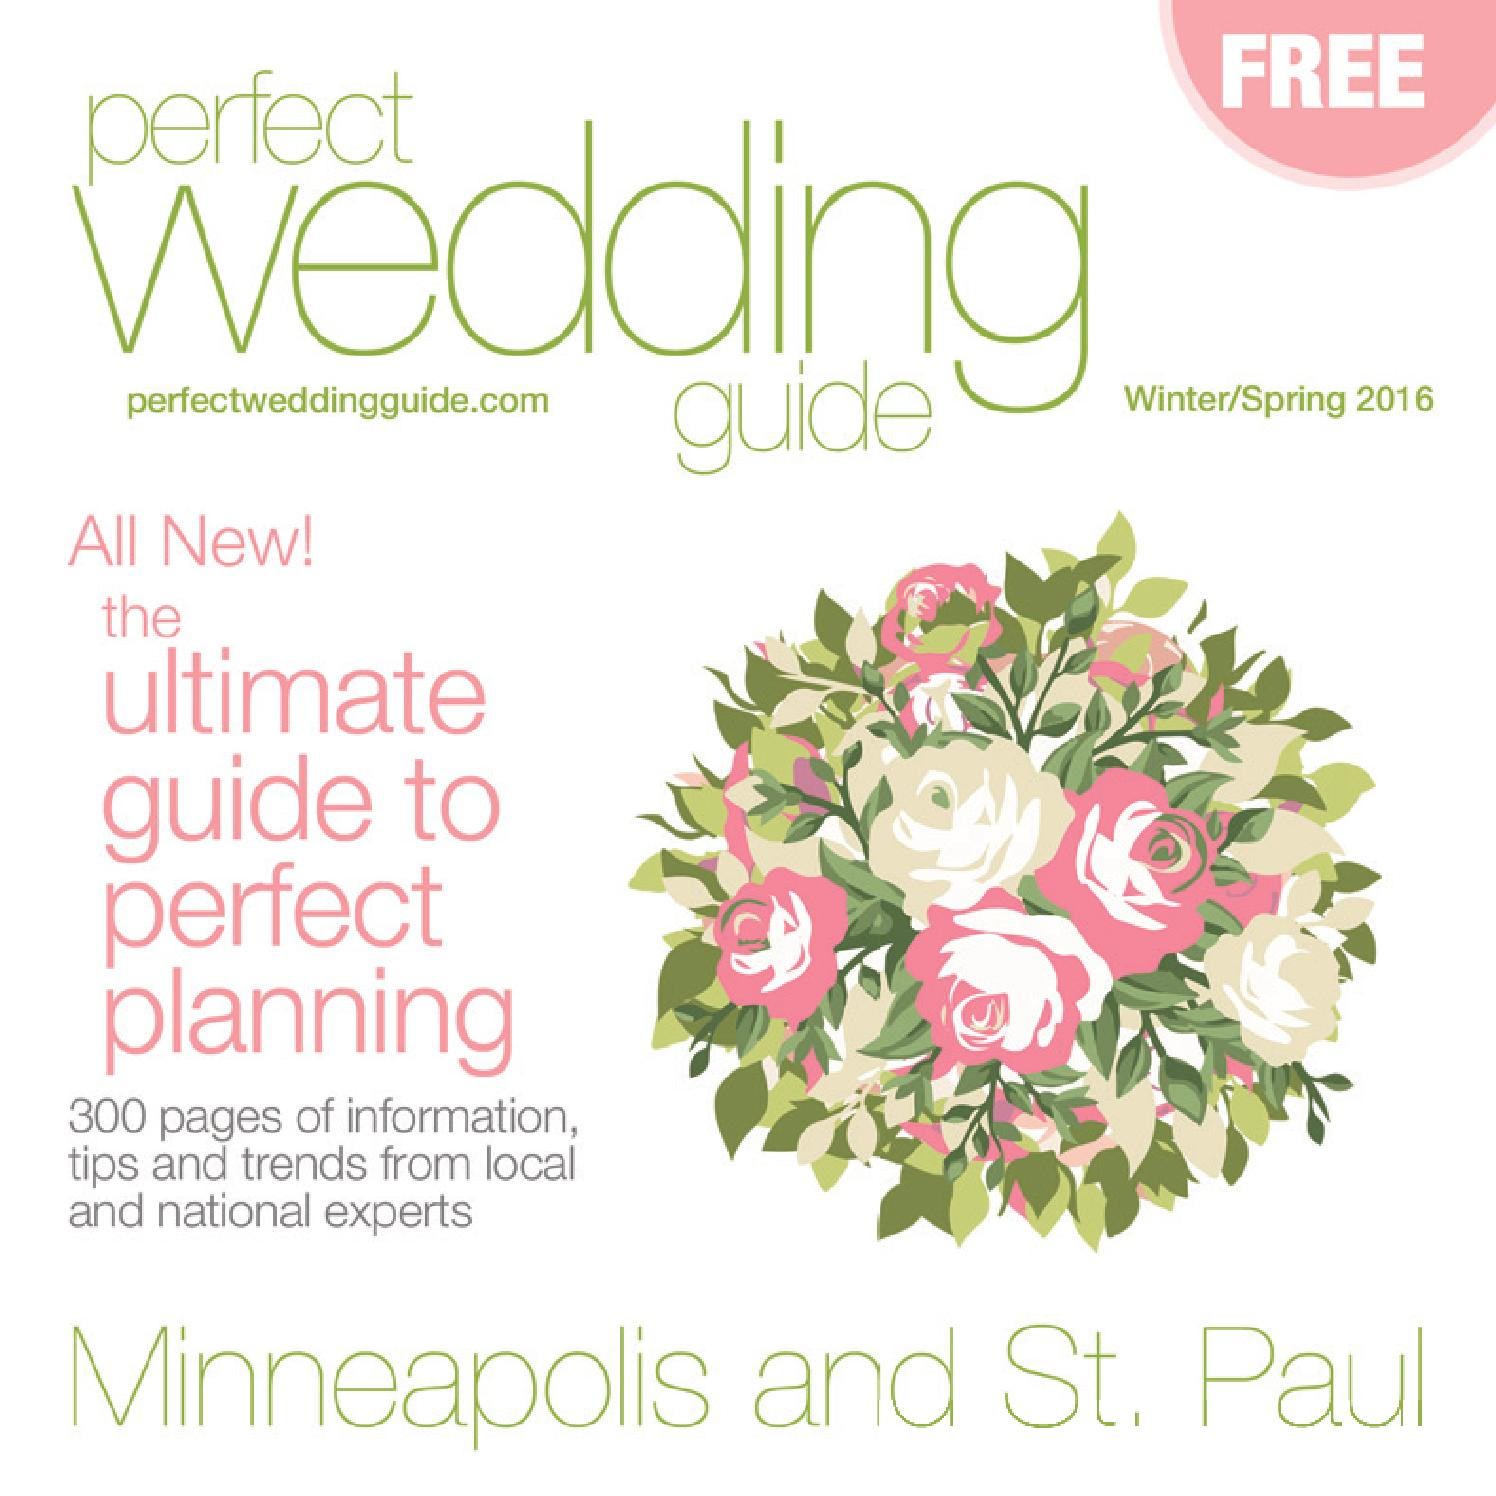 Perfect wedding guide twin cities winterspring 2016 by rick perfect wedding guide twin cities winterspring 2016 by rick caldwell issuu junglespirit Image collections